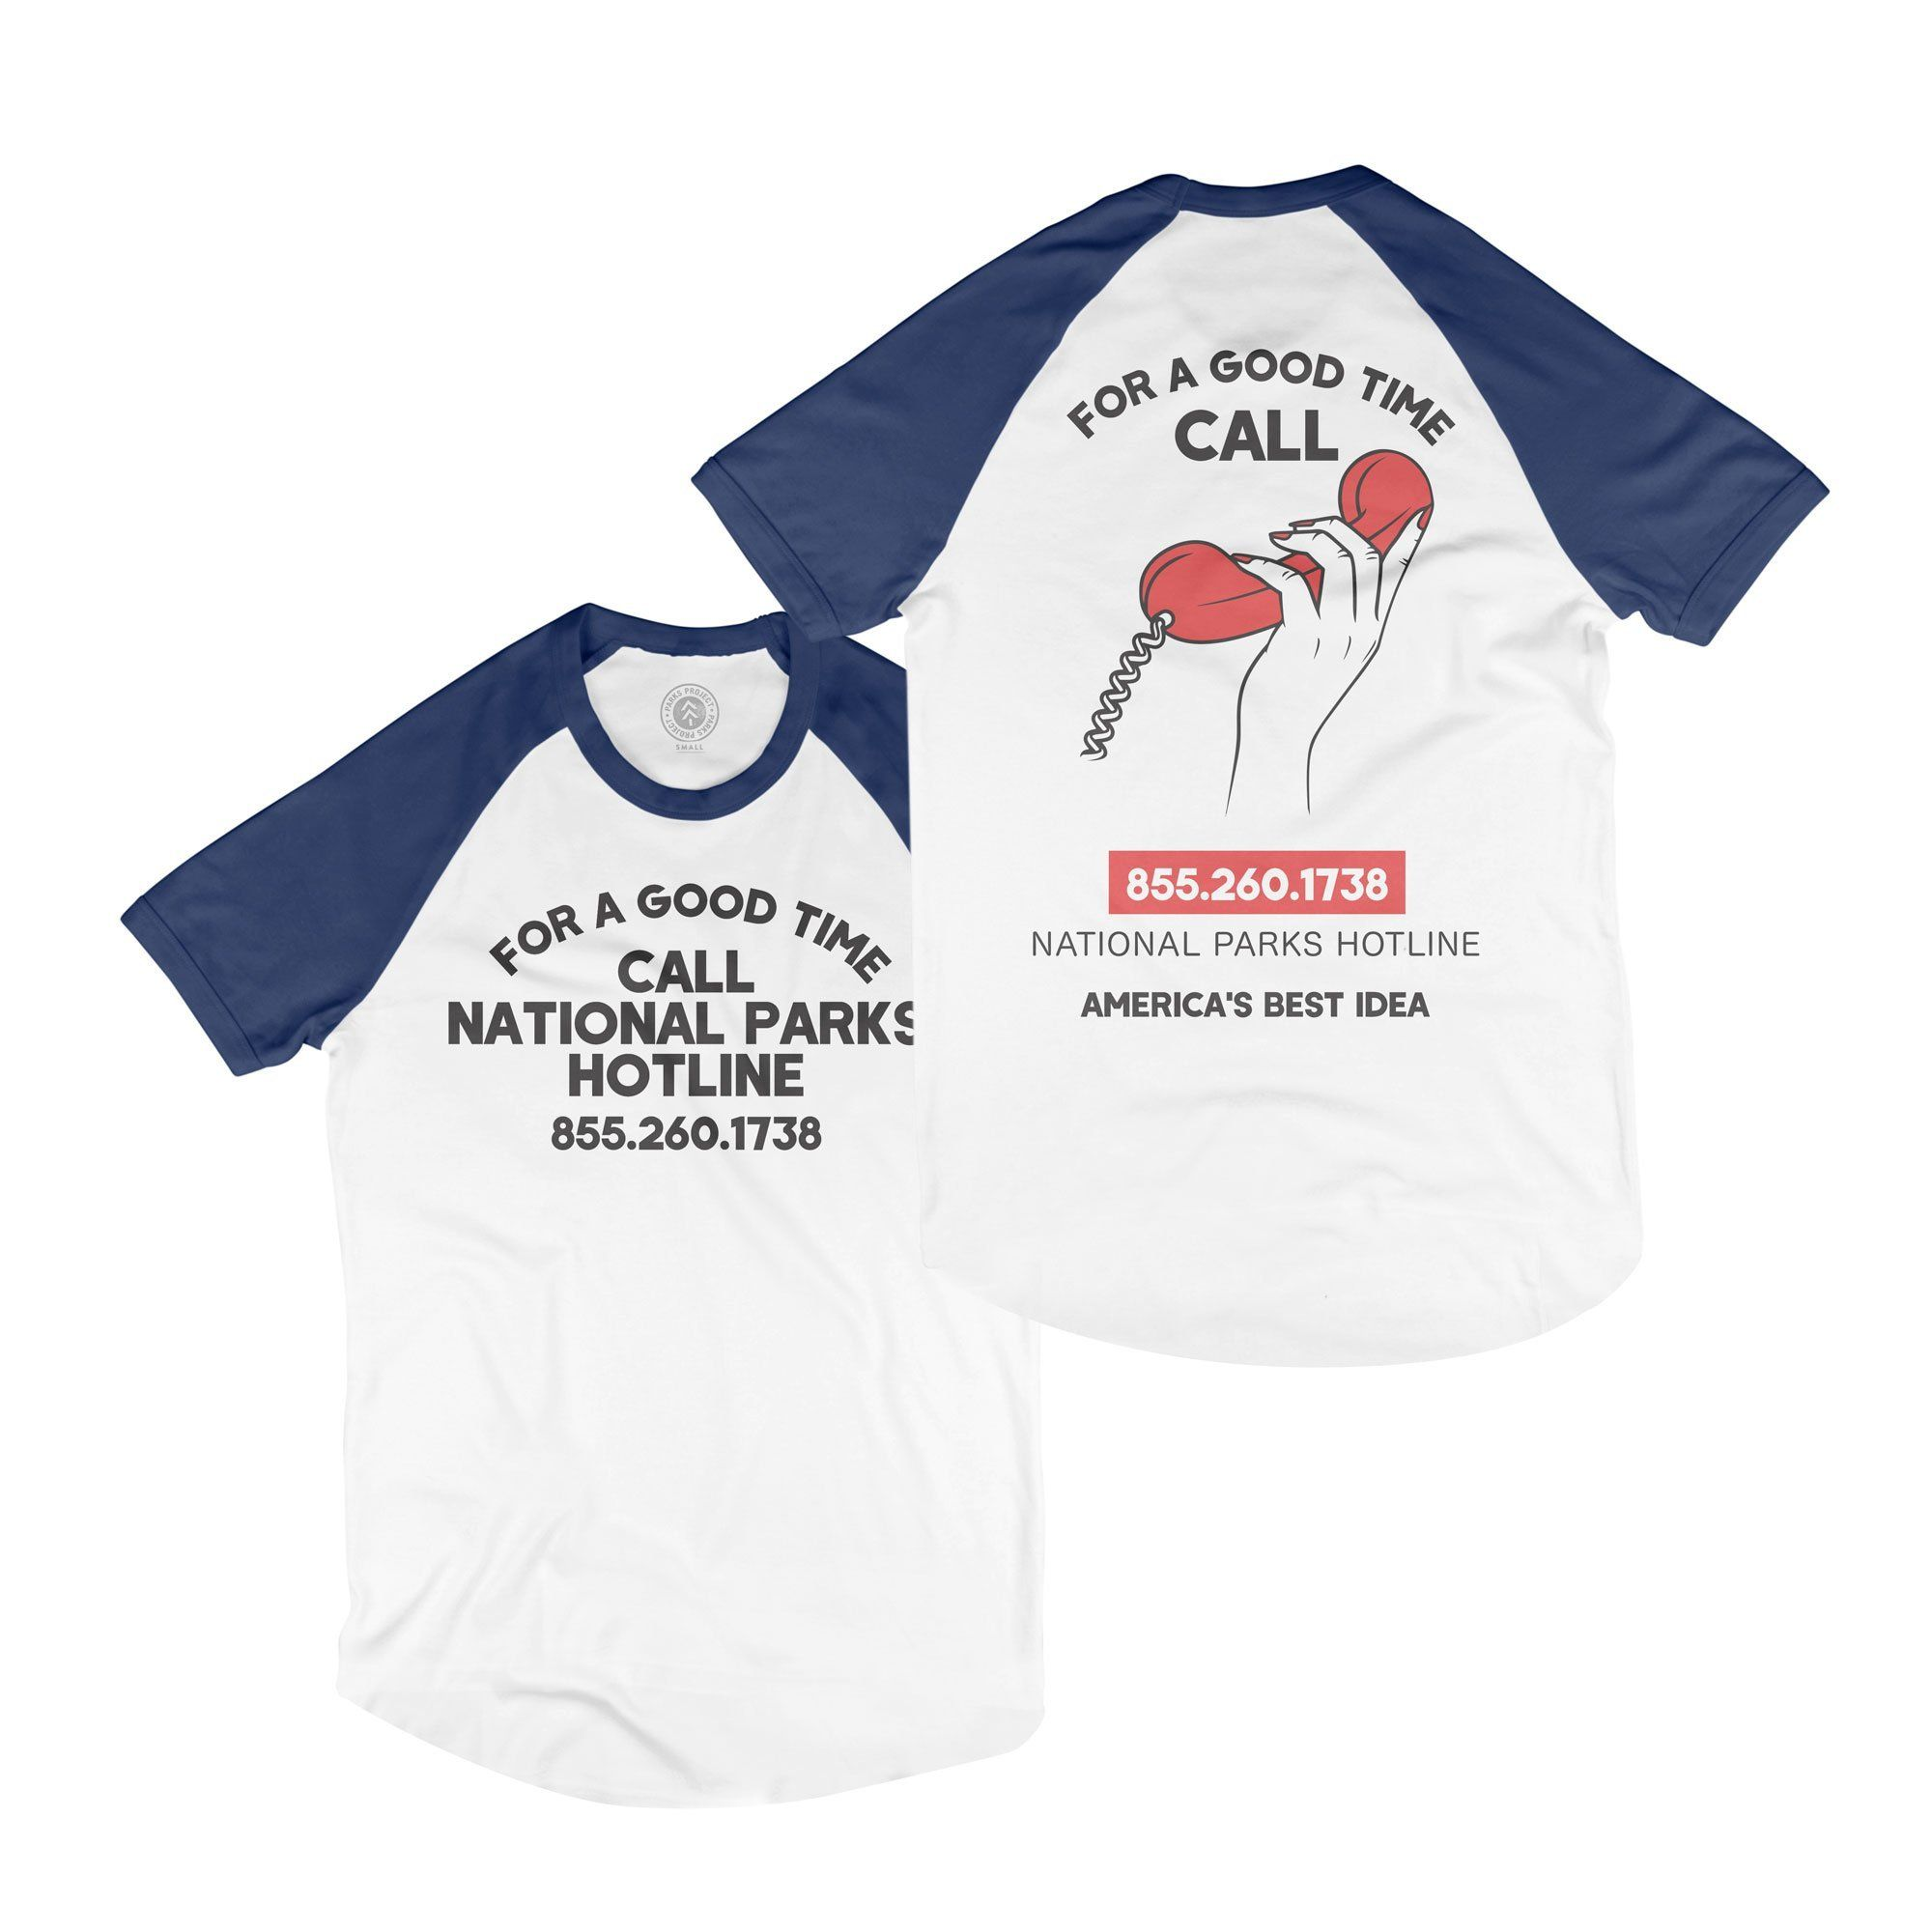 441b712ed National Parks Hotline Tee | Parks Project | National Park Vintage Shirts  question and answer idea, equal size on front and back